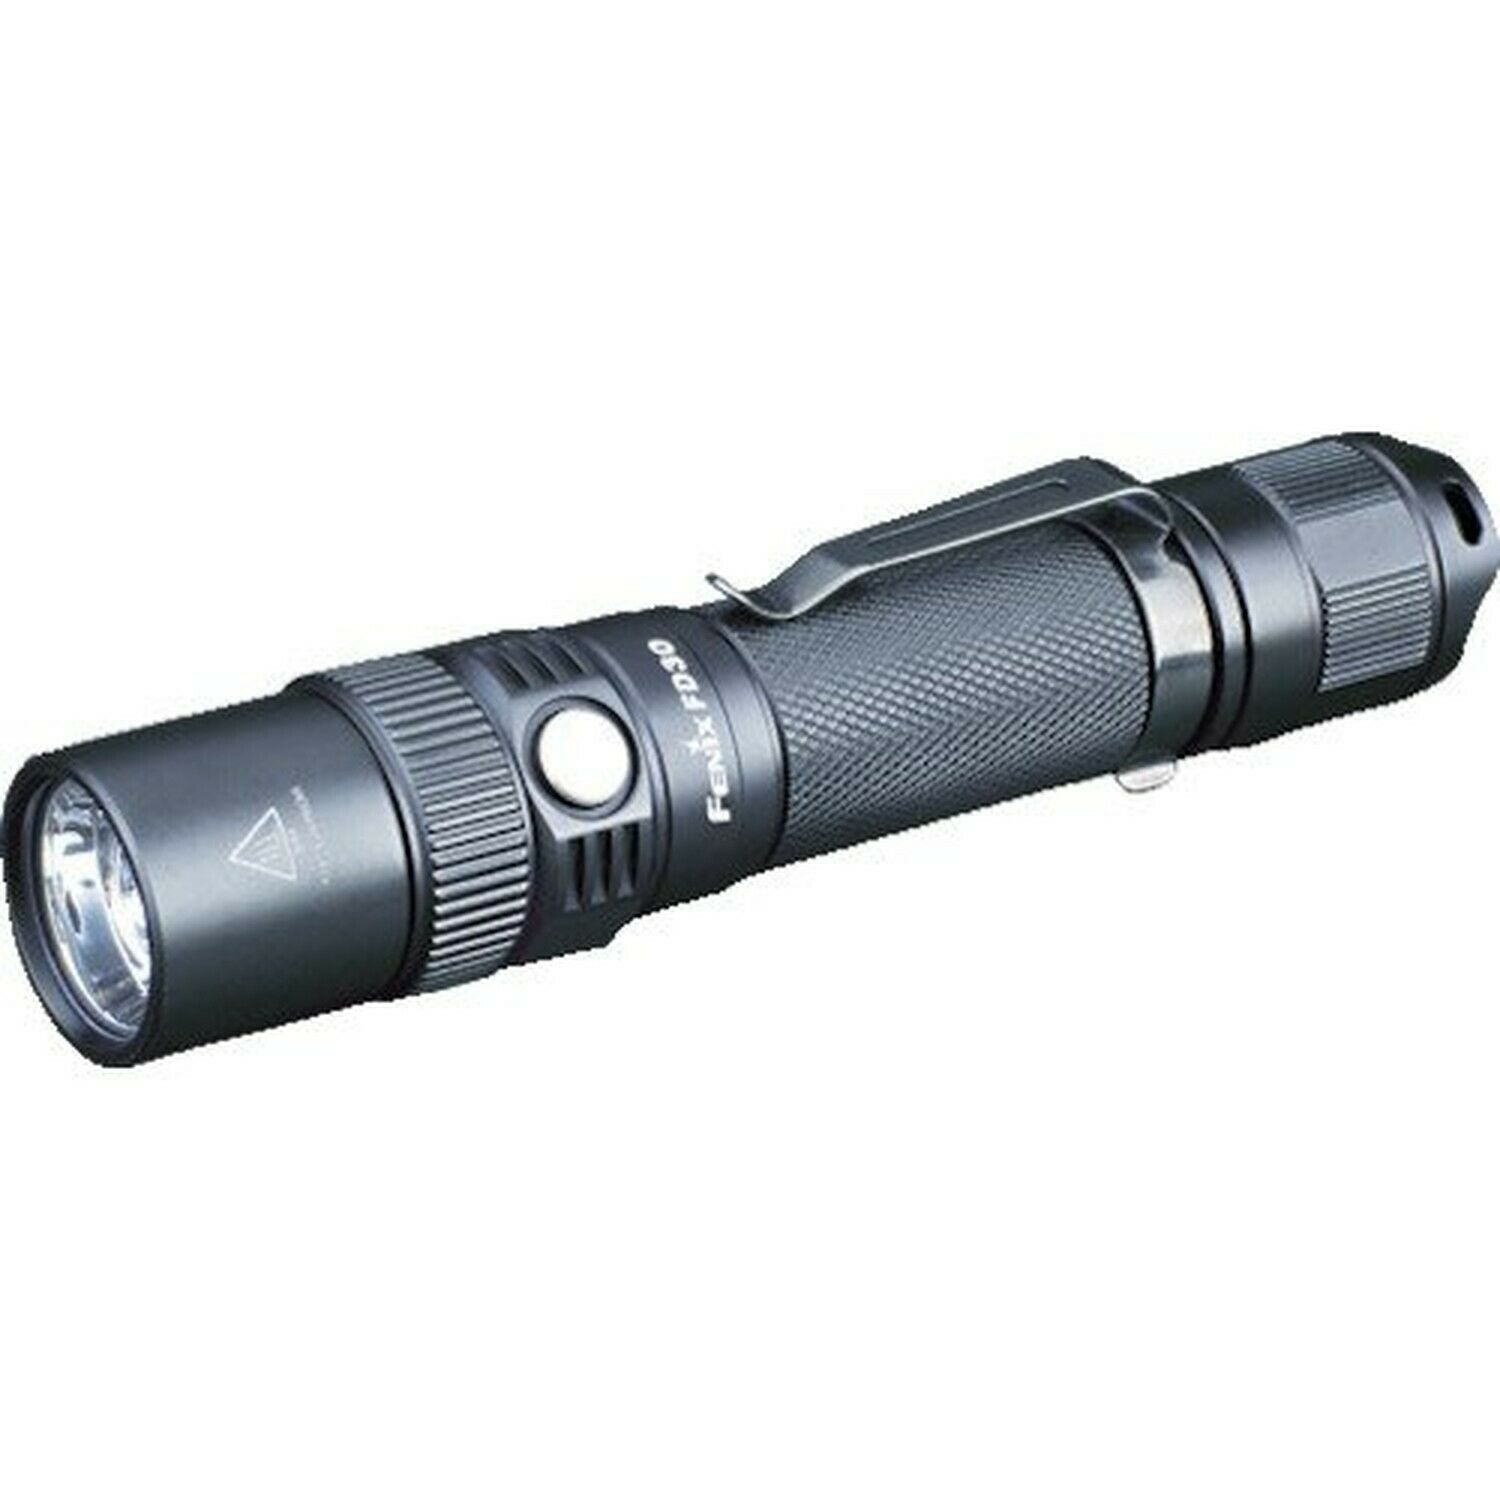 FENIX Unisex's Fd30 Focusing Torch, zwart, One afmeting